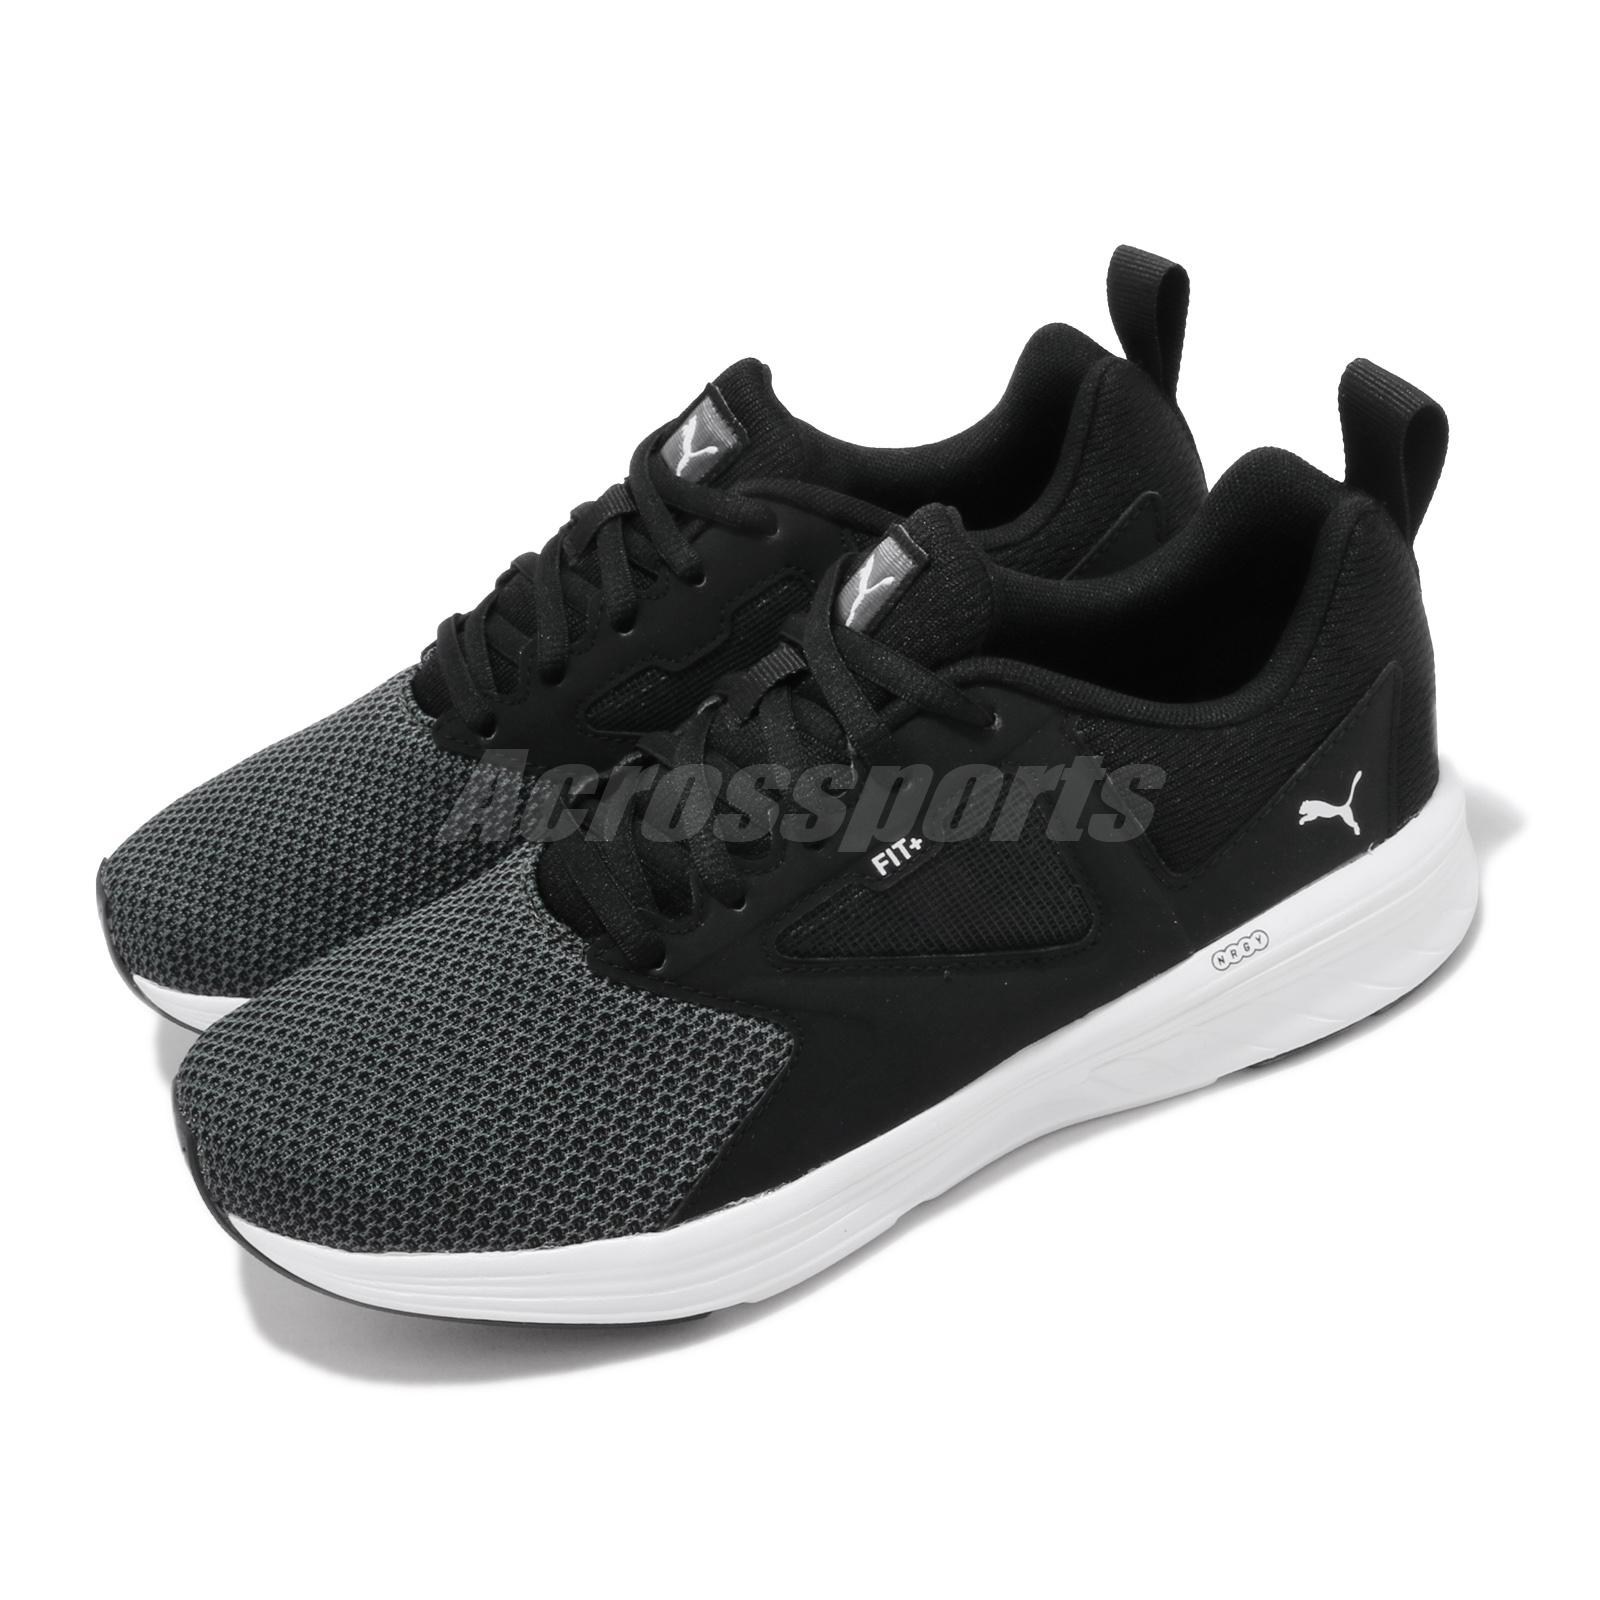 Details about Puma NRGY Asteroid Black White Men Women Unisex Running Shoes  Sneakers 192804-01